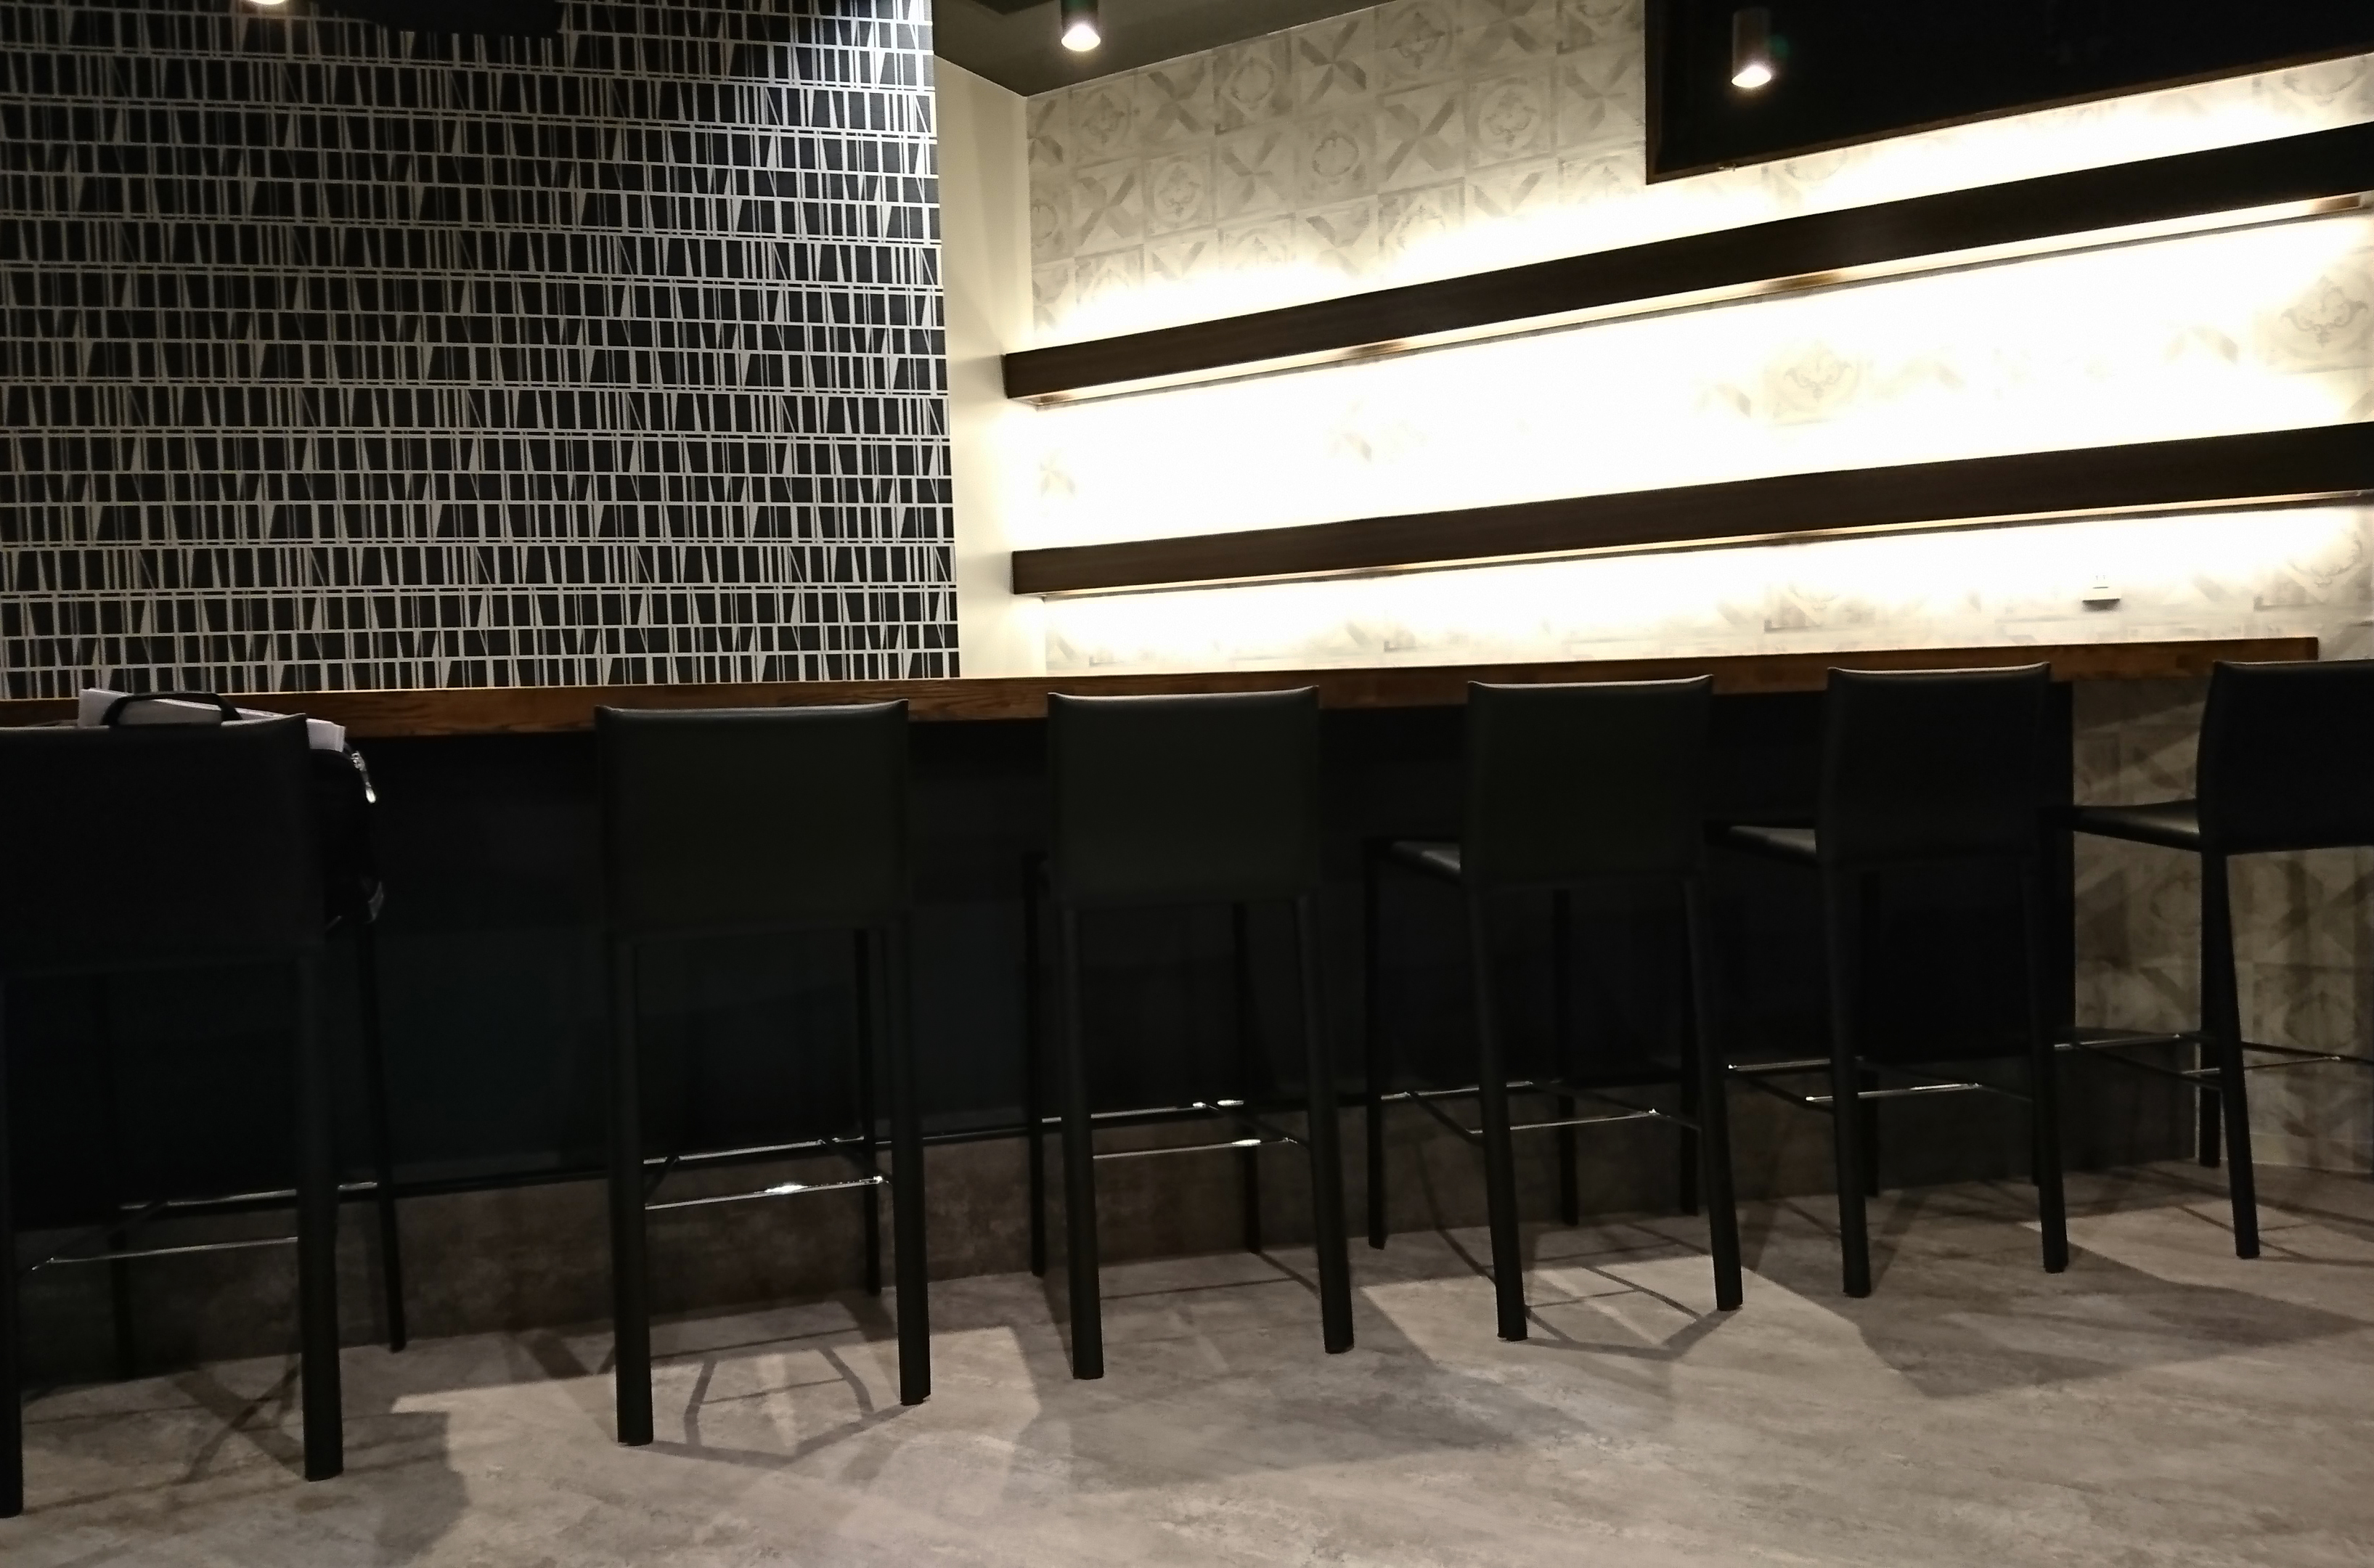 Dining AI from ISSEYの店内の様子です